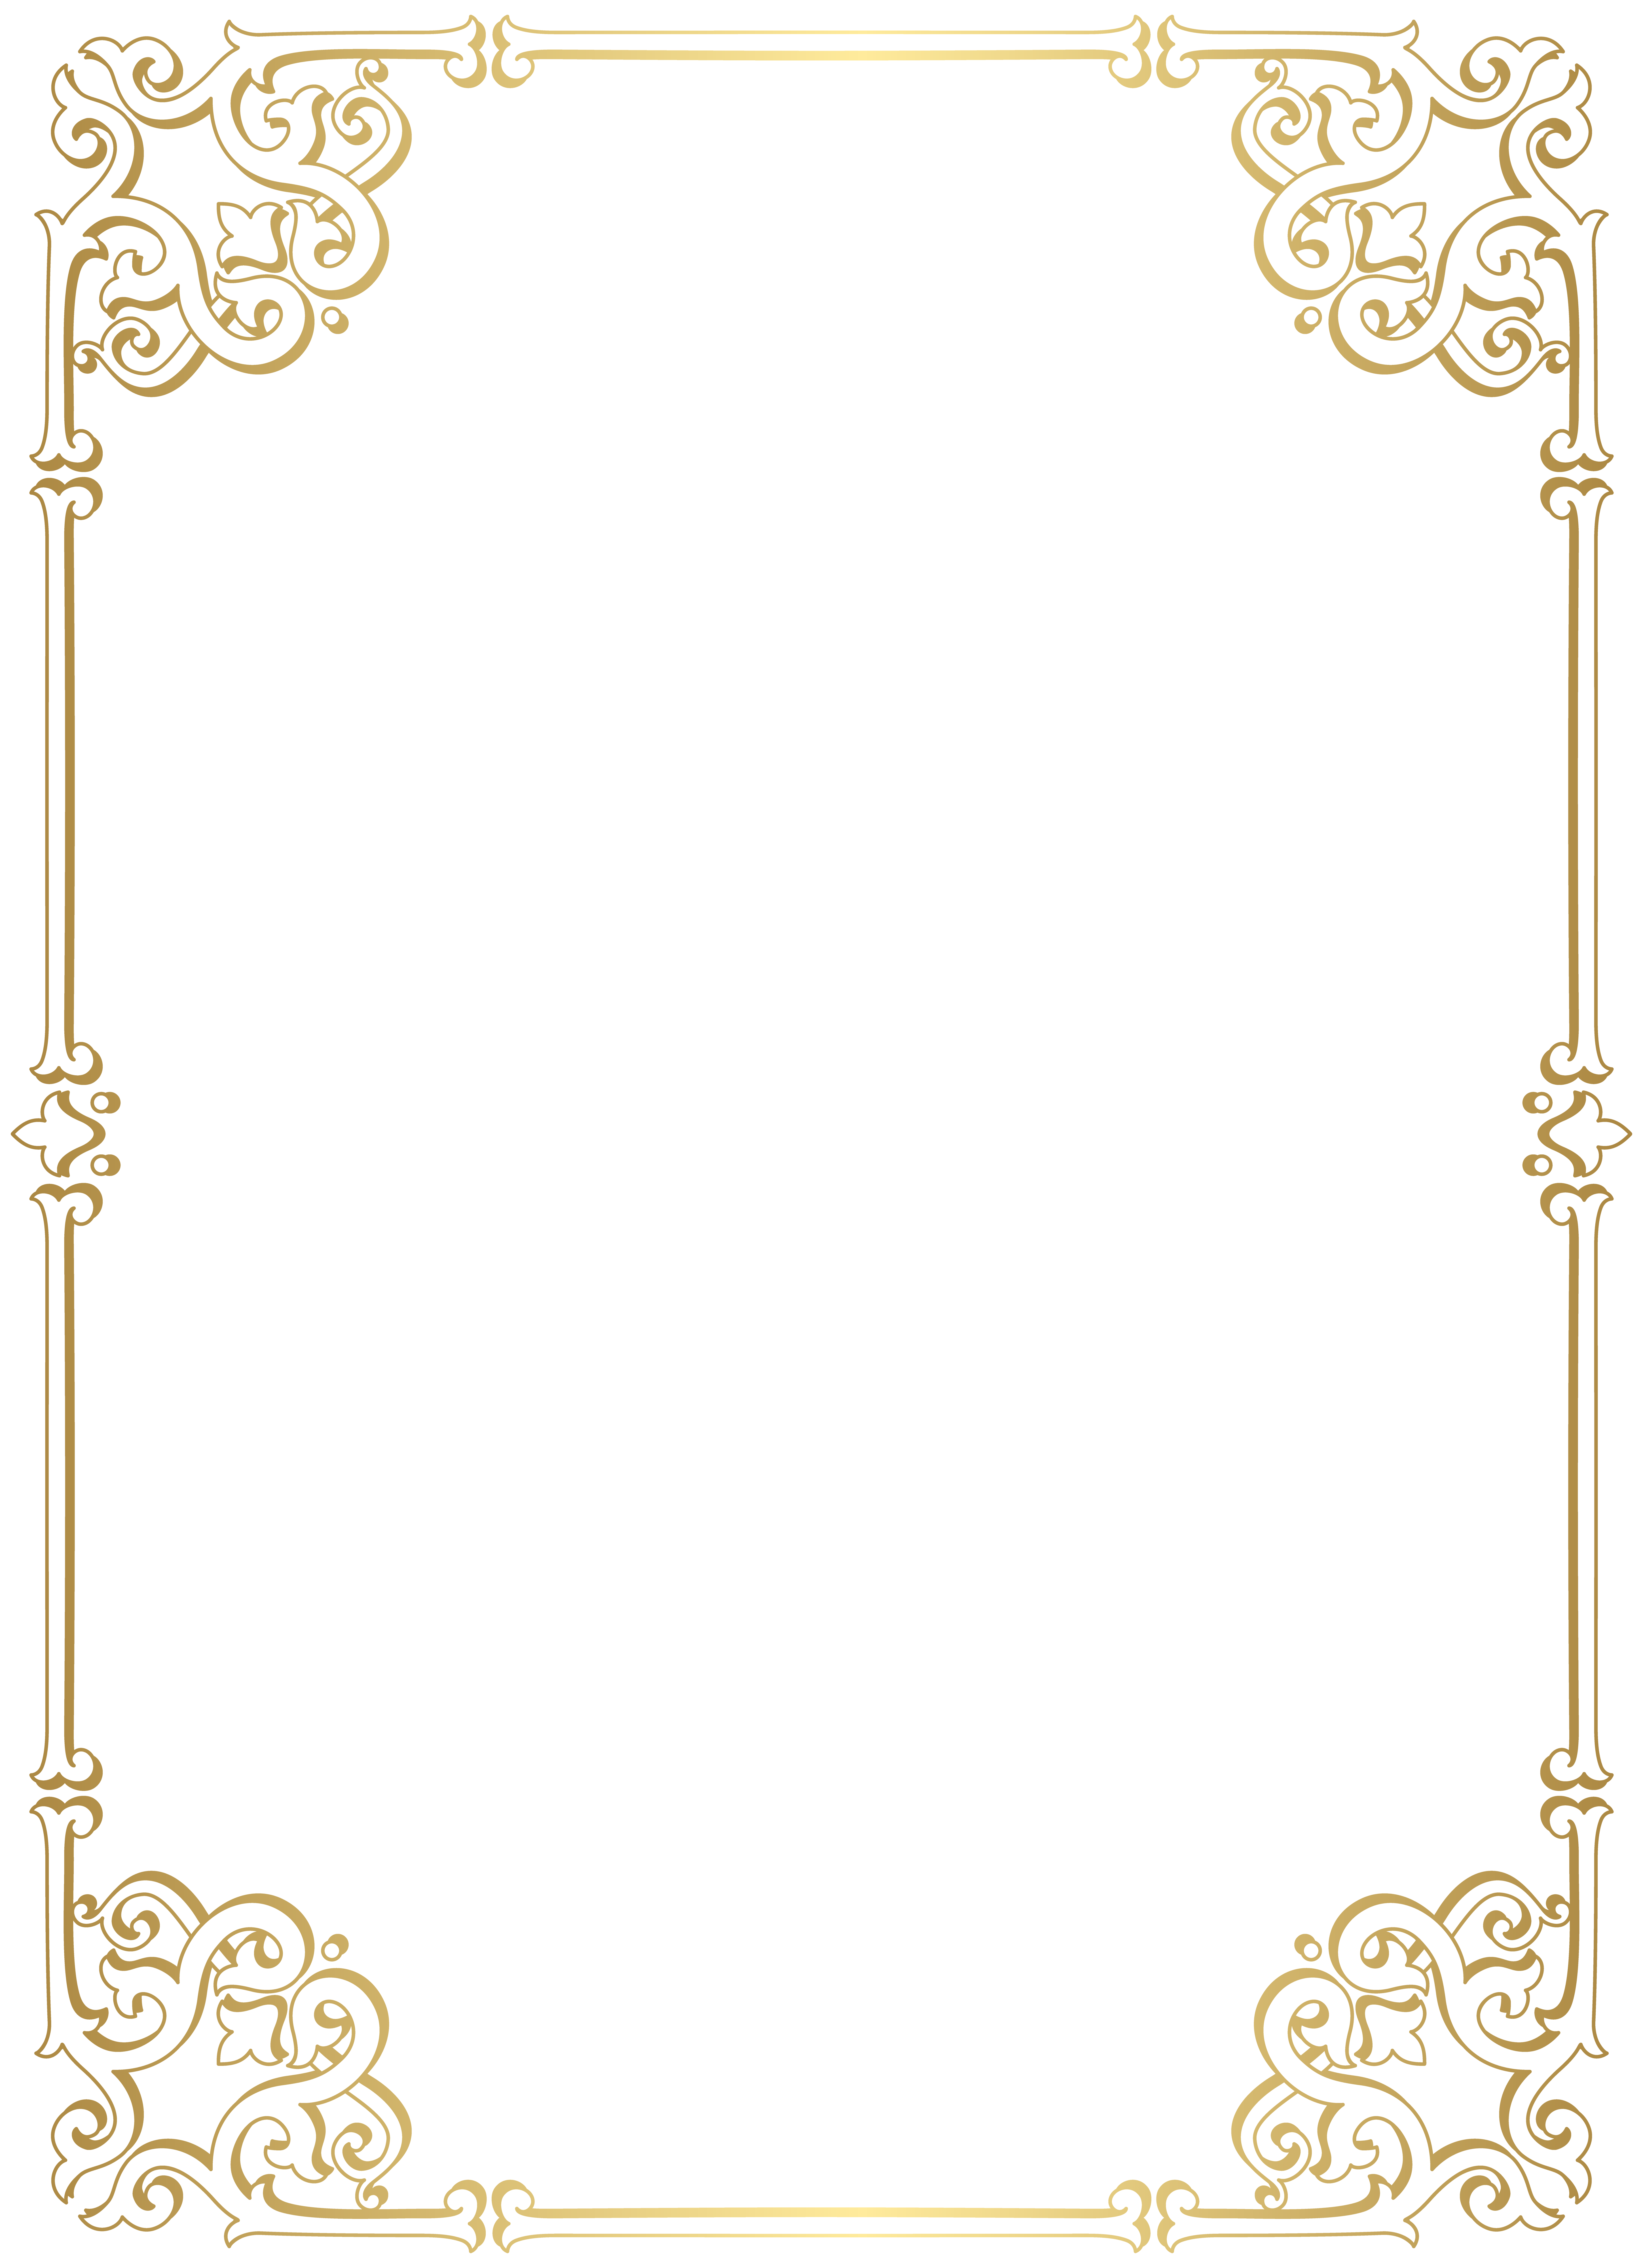 Decorative Border Frame Png Clip Art Gallery Yopriceville High Quality Images And Transpare Clip Art Frames Borders Decorative Borders Frame Border Design